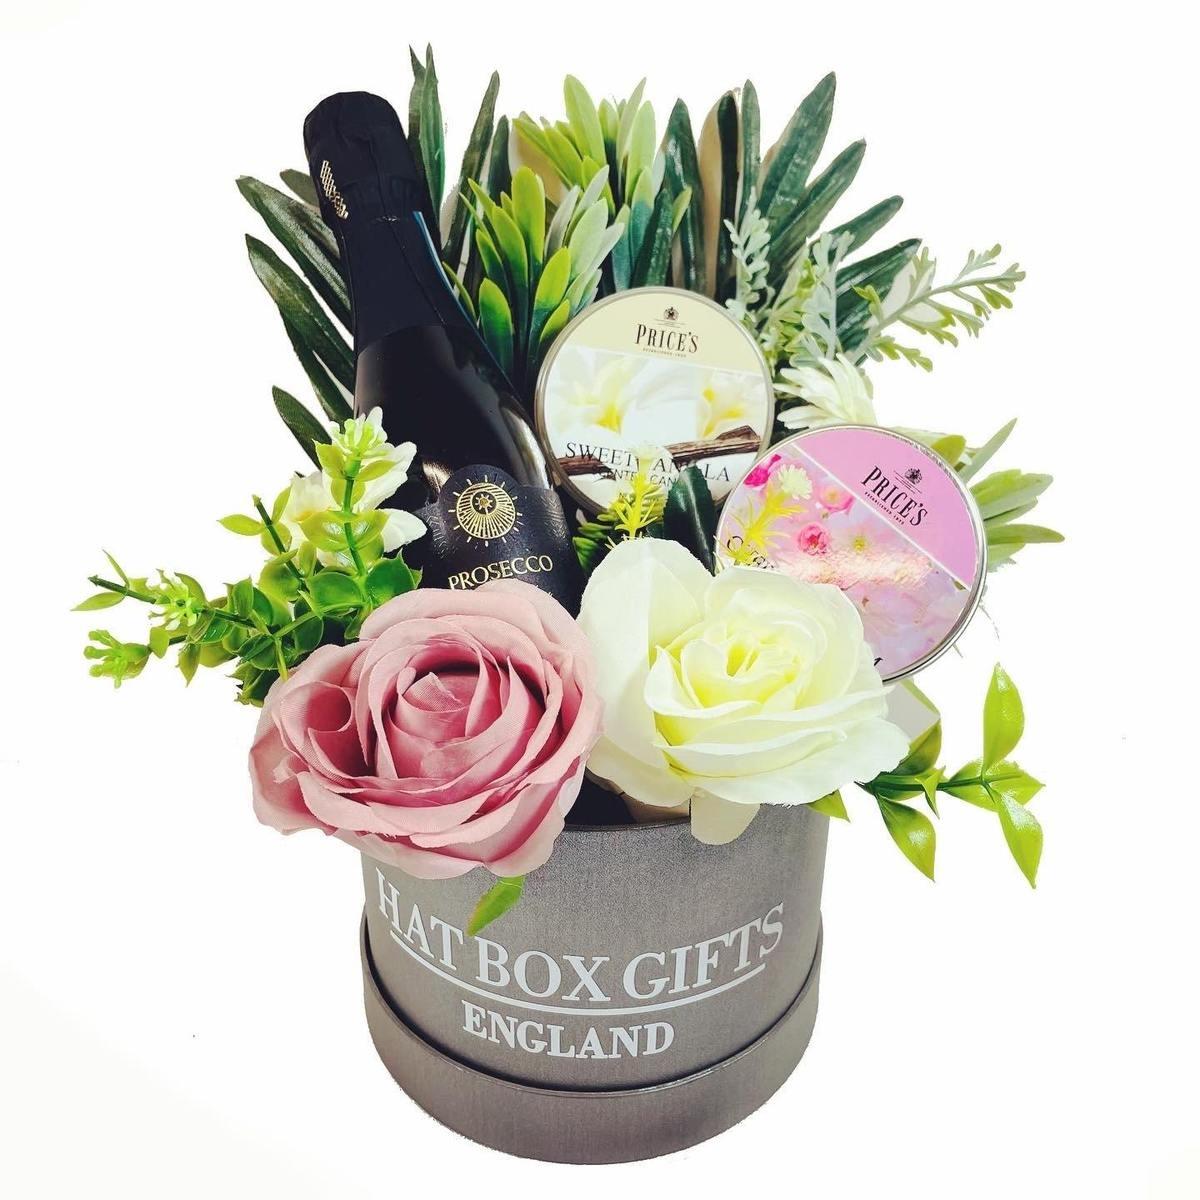 Hat Box with Price's Candles, Prosecco & Flowers